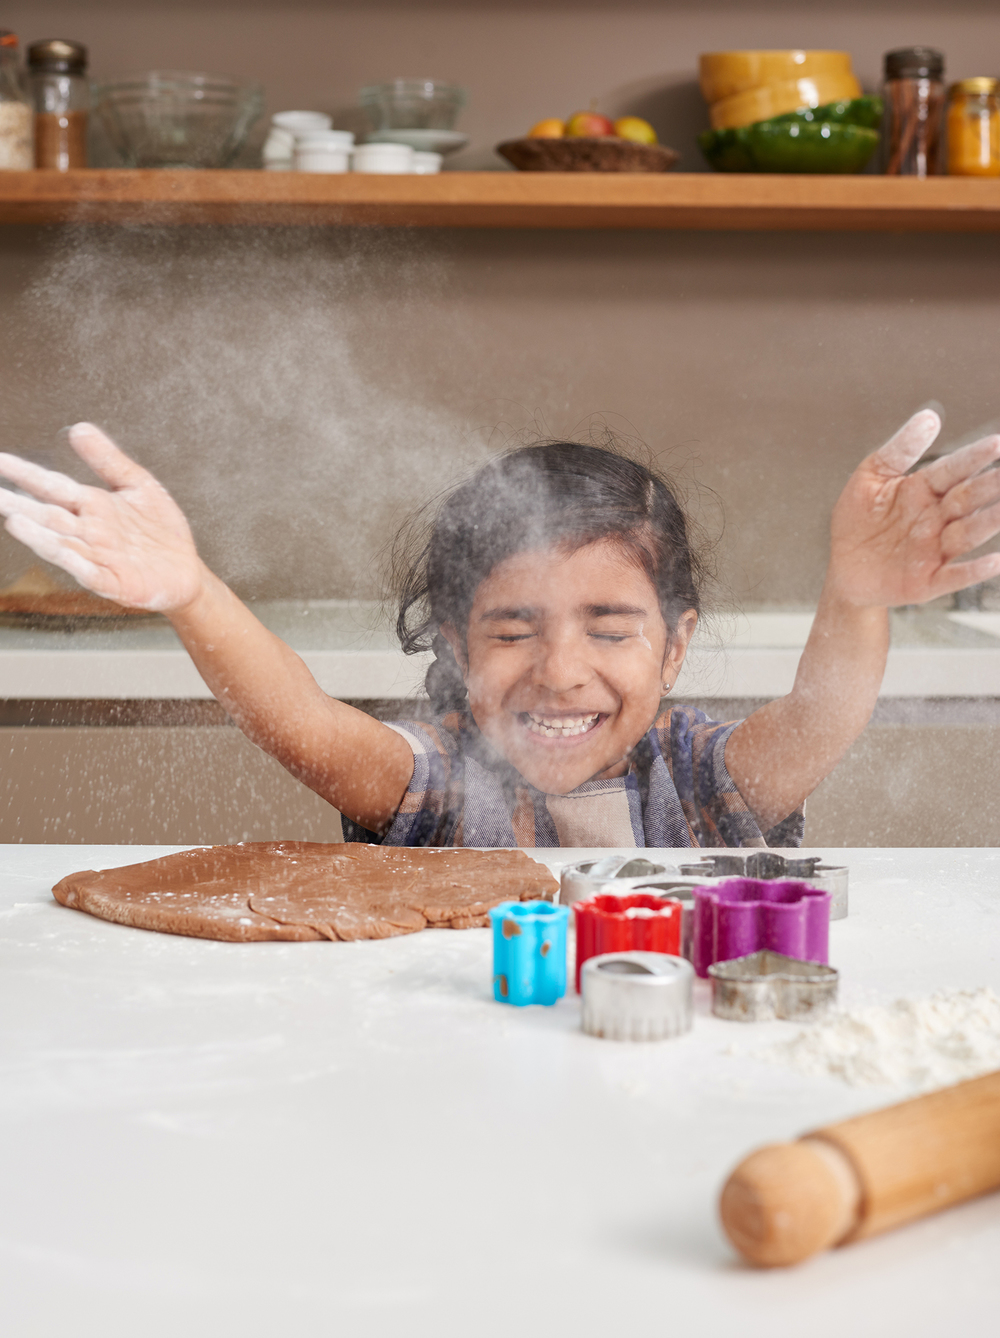 lifestyle photography of little girl baking